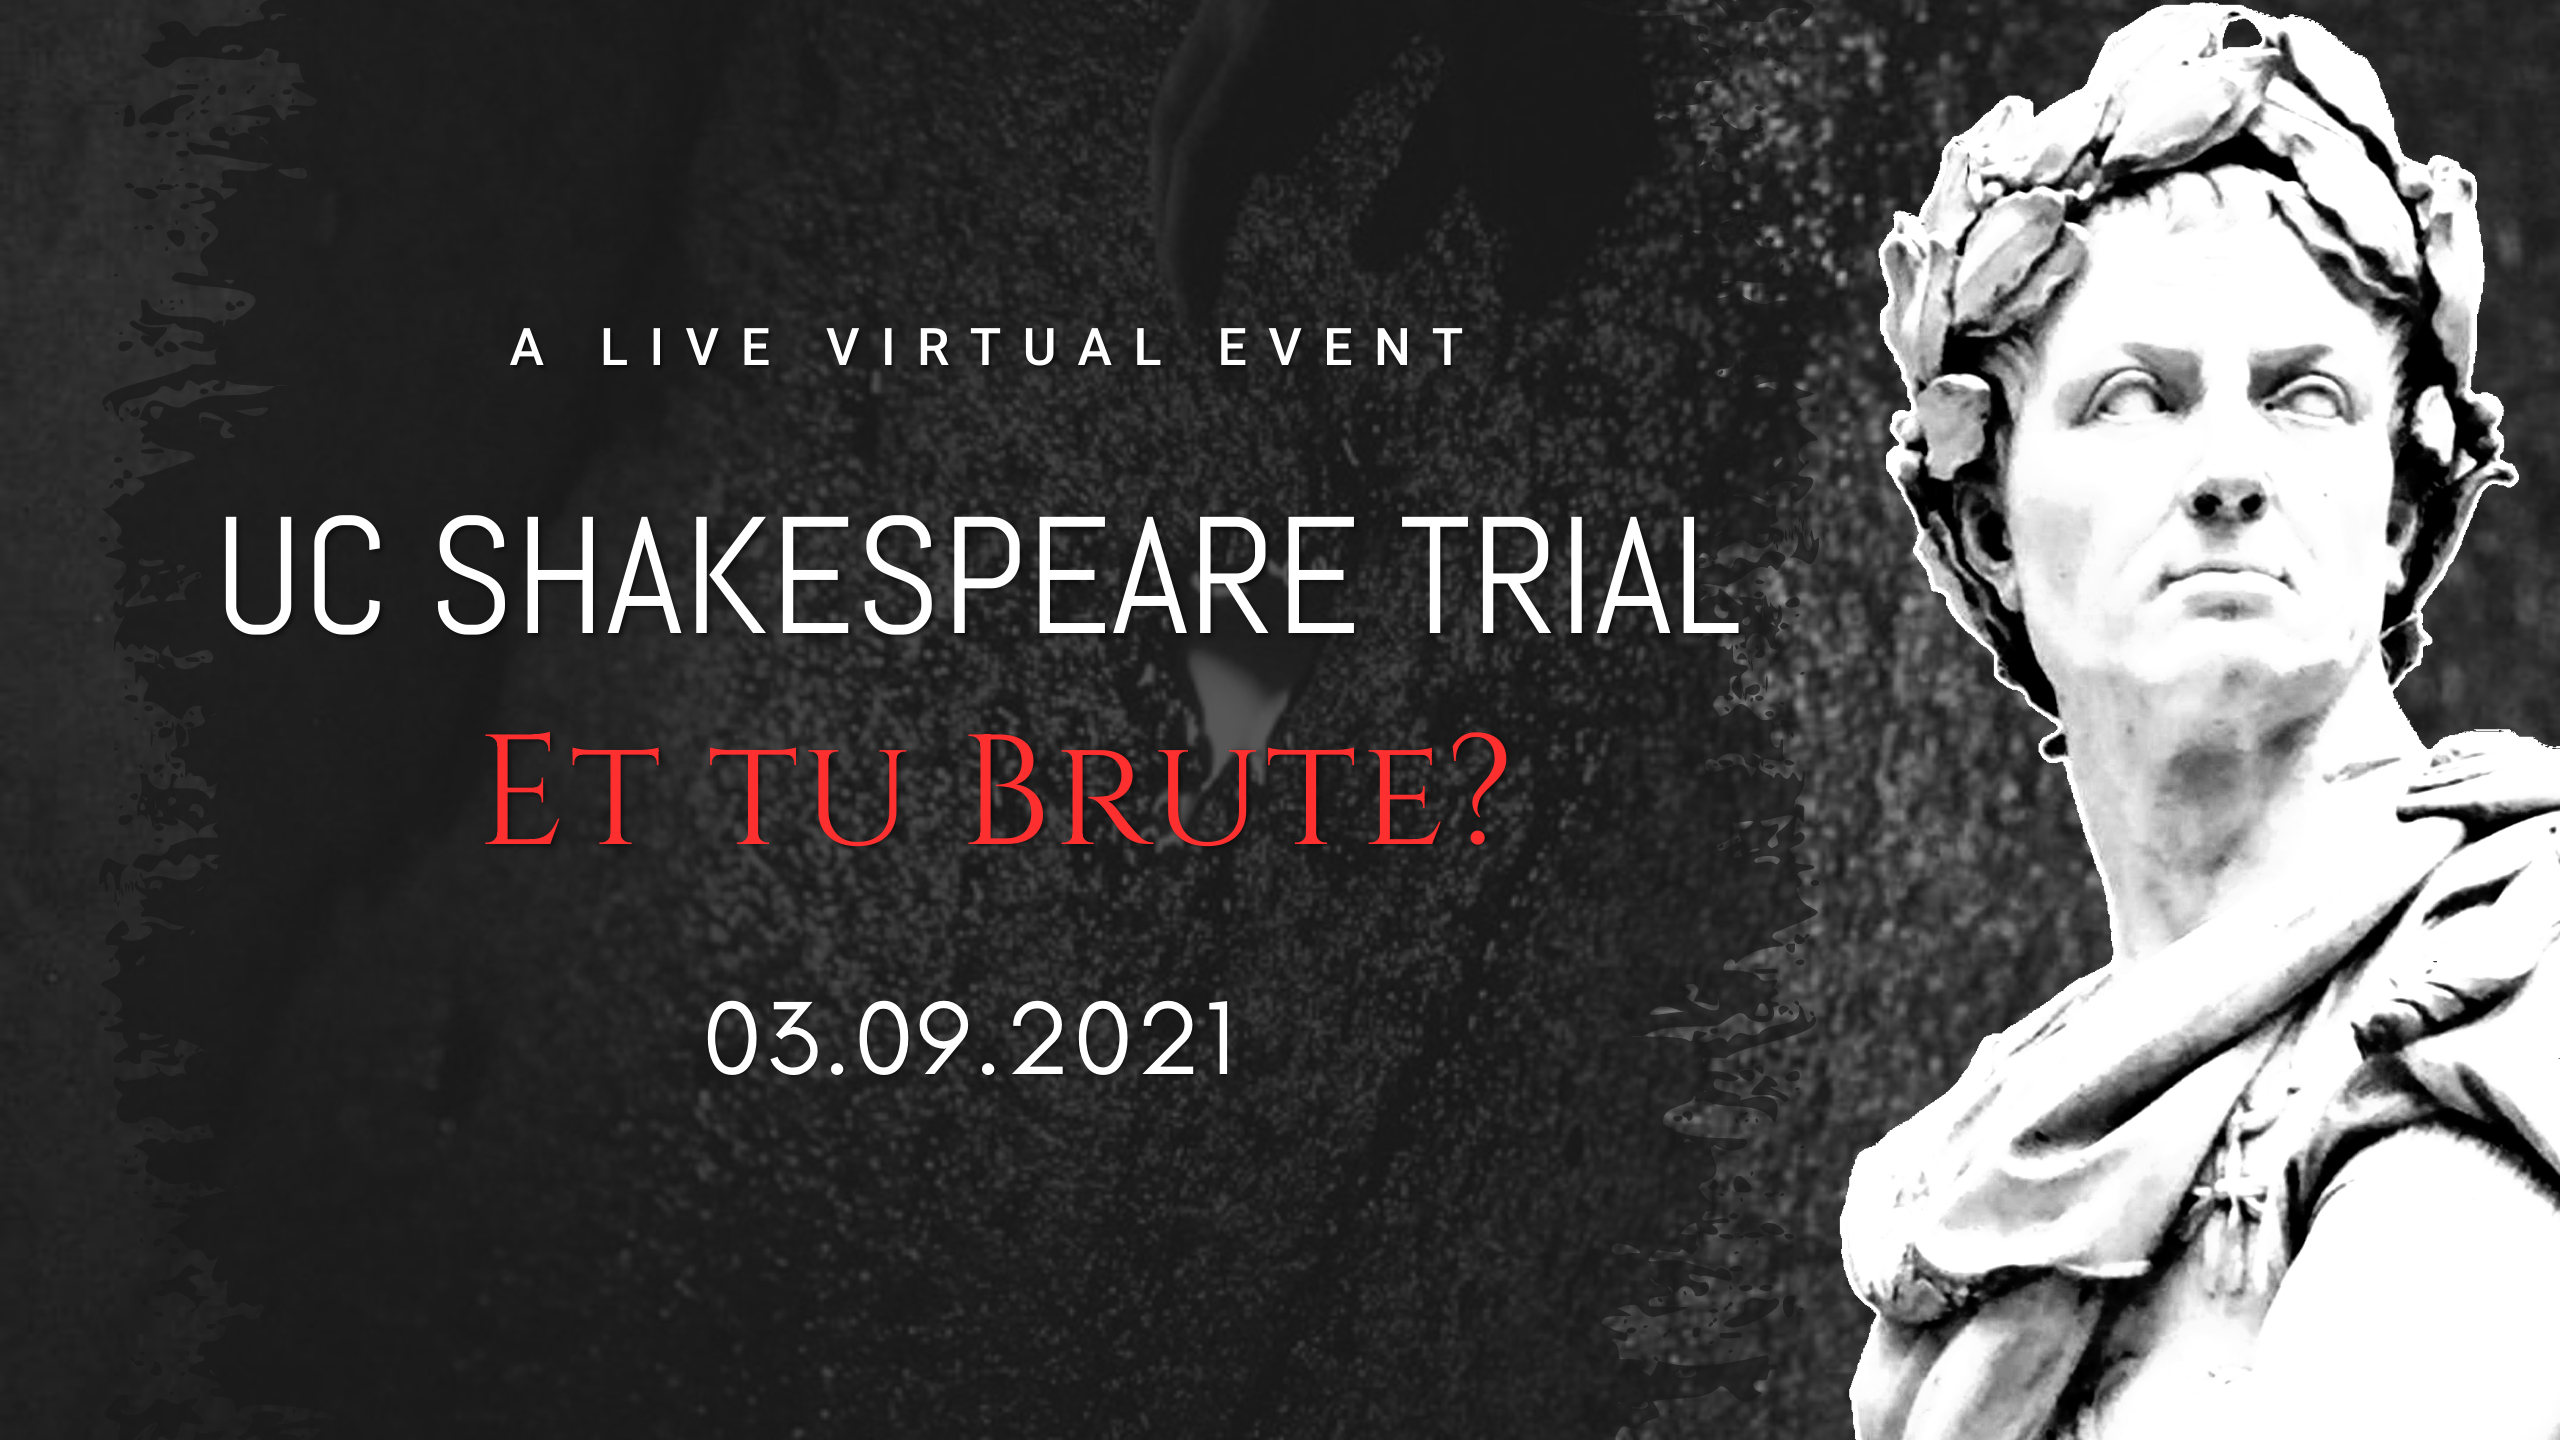 UC Shakespeare Trial